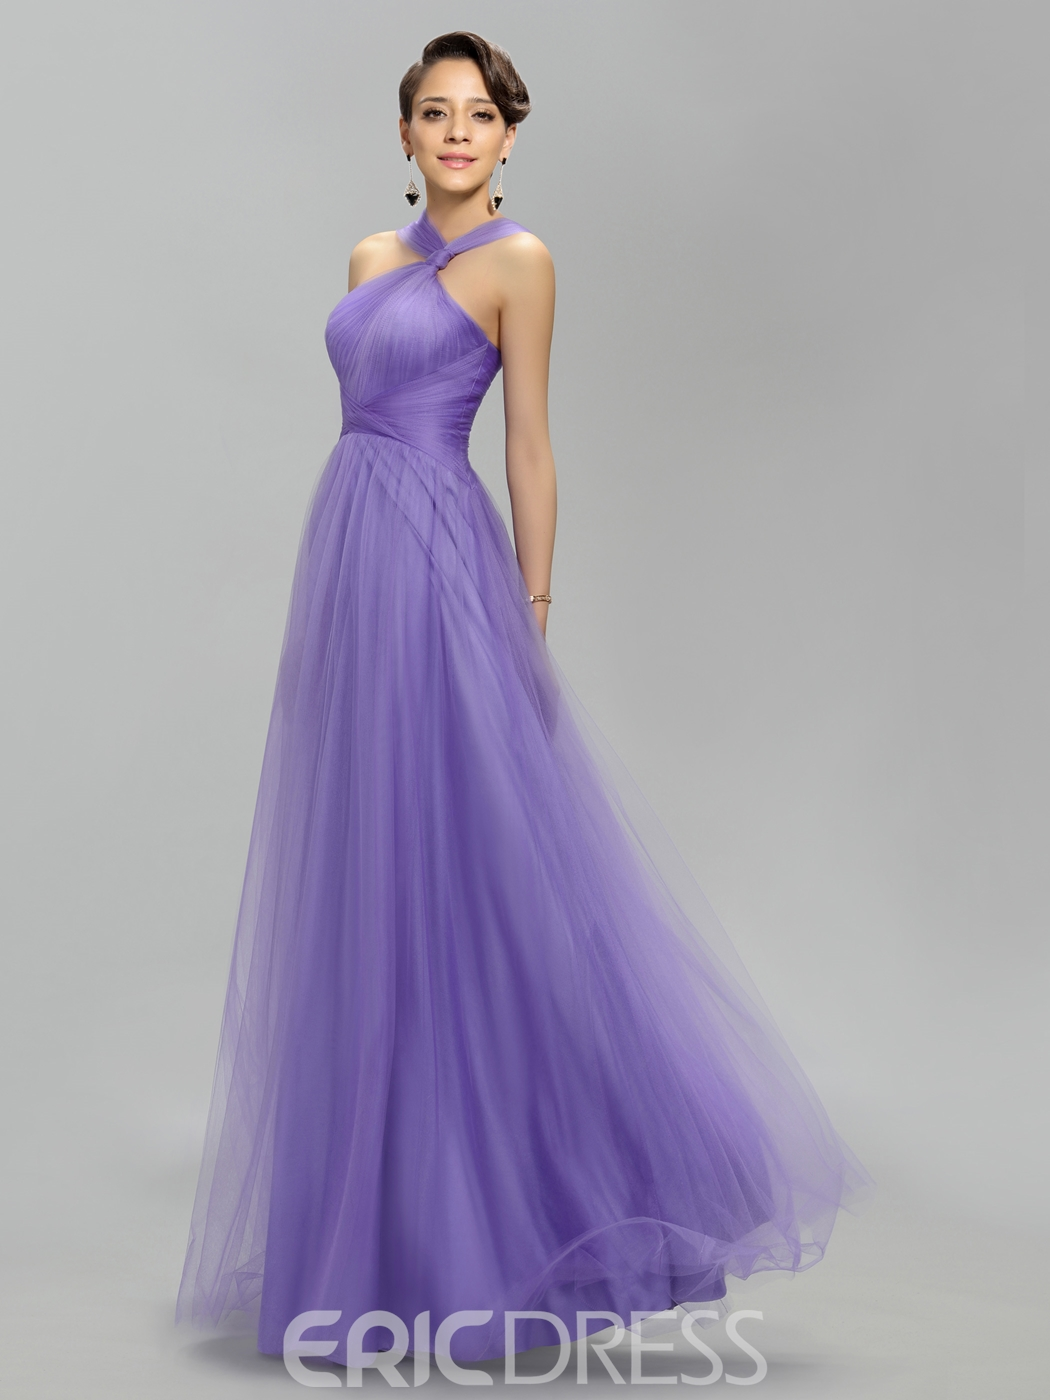 Ericdress Prom Dresses: The Unique Neck Makes A Simple Prom Dress ...